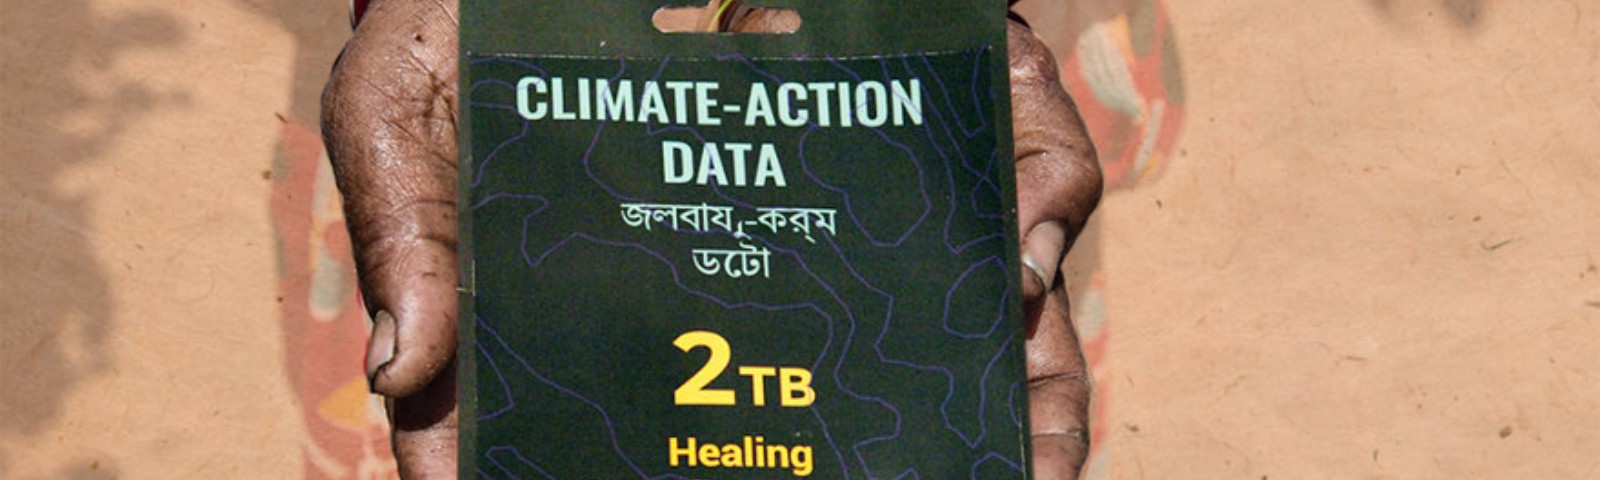 Climate action data packages Collection of the hypothetical data packages from this world exhibits their interpretation of th